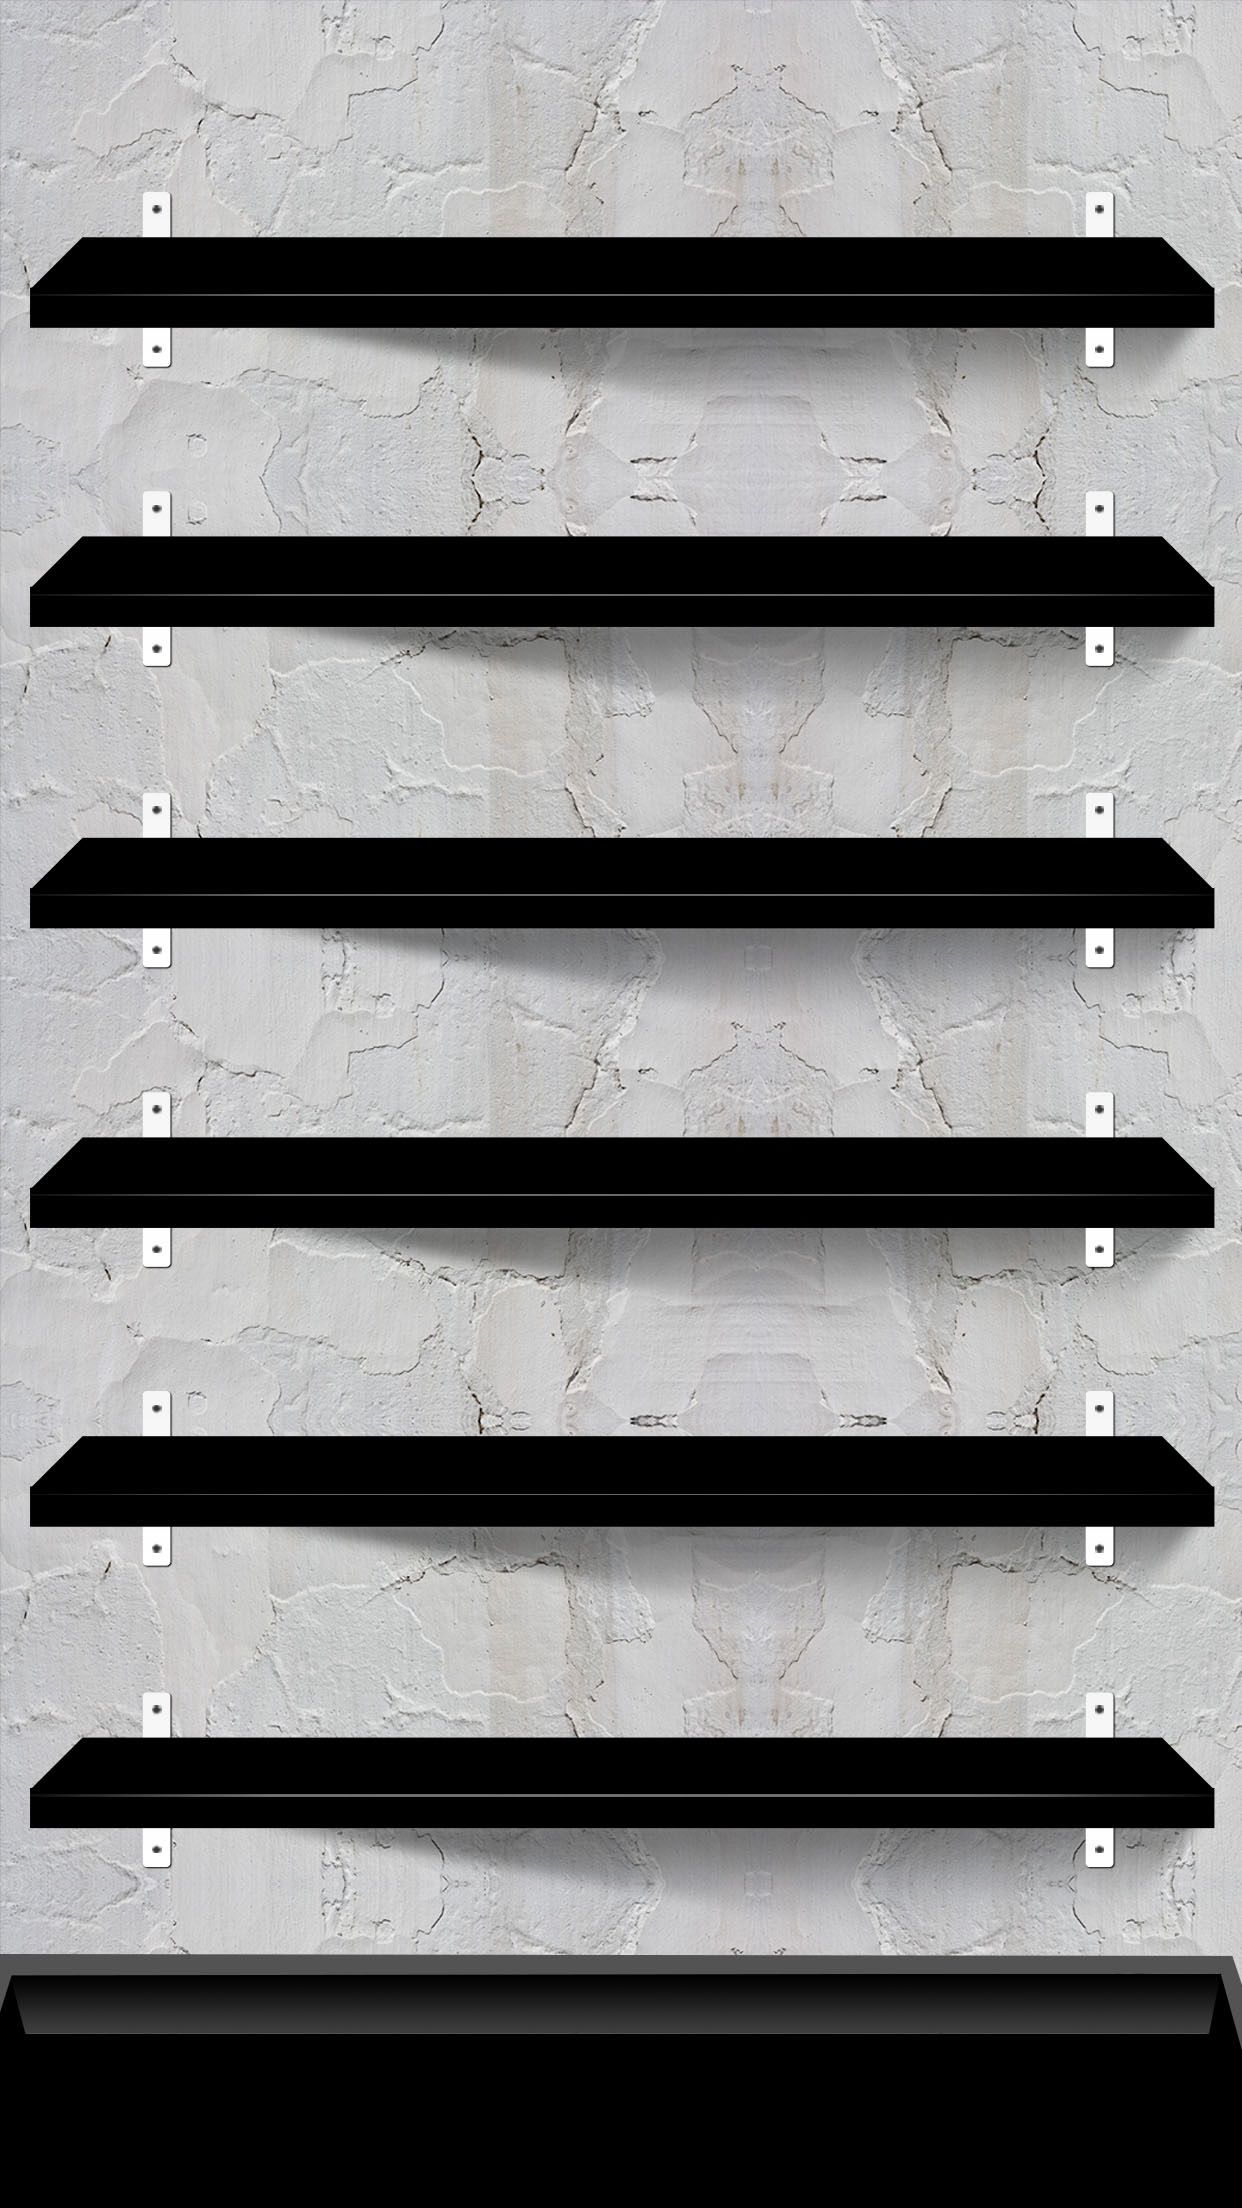 Tap And Get The Free App Shelves Stylish Grey Concrete Texture Minimalistic Hd Iphone 6 Plus Wallpaper Oboi Android Oboi Dlya Iphone Yabloko Oboi